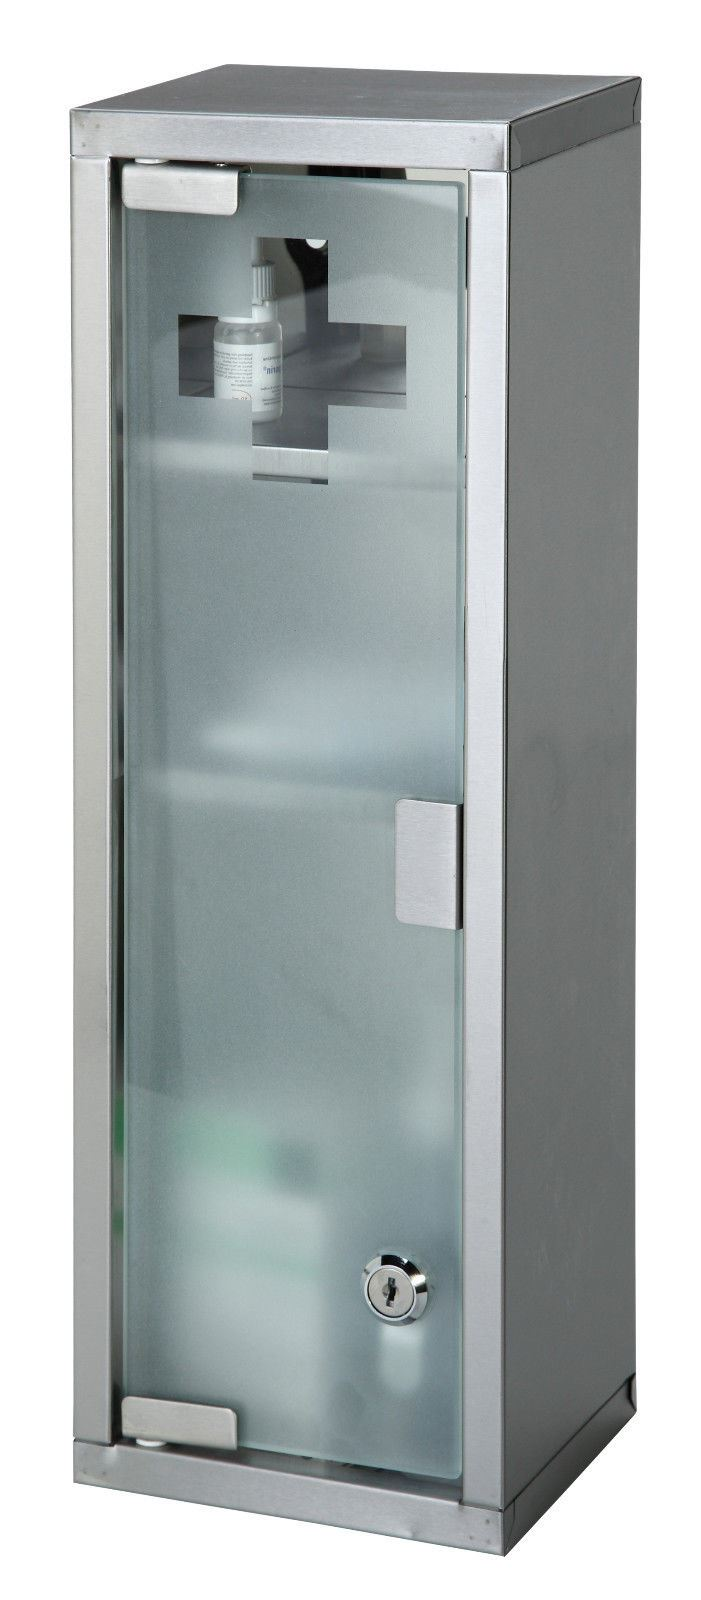 large wall mountable medicine cabinet cupboard first aid lockable glass door new ebay. Black Bedroom Furniture Sets. Home Design Ideas